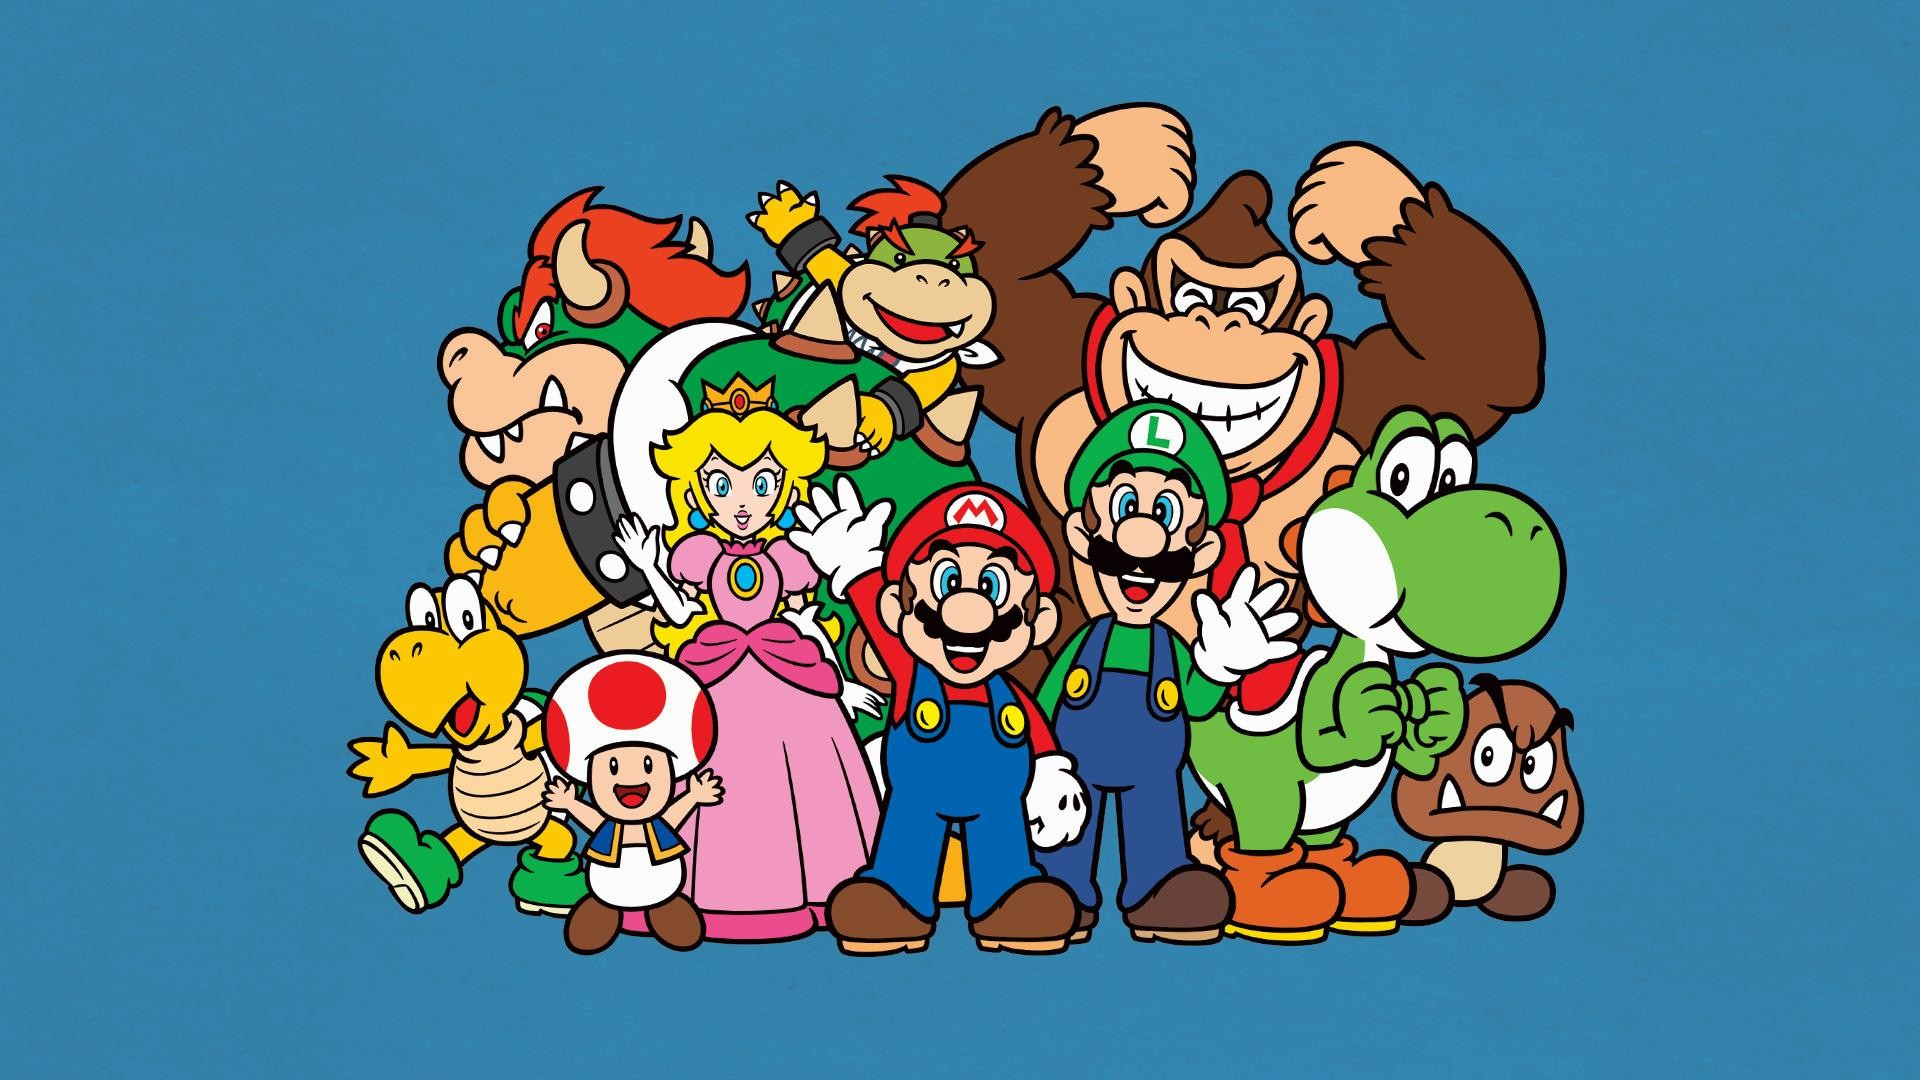 1920x1080 wallpaper.wiki-Nintendo-Backgrounds-Free-PIC-WPE002257